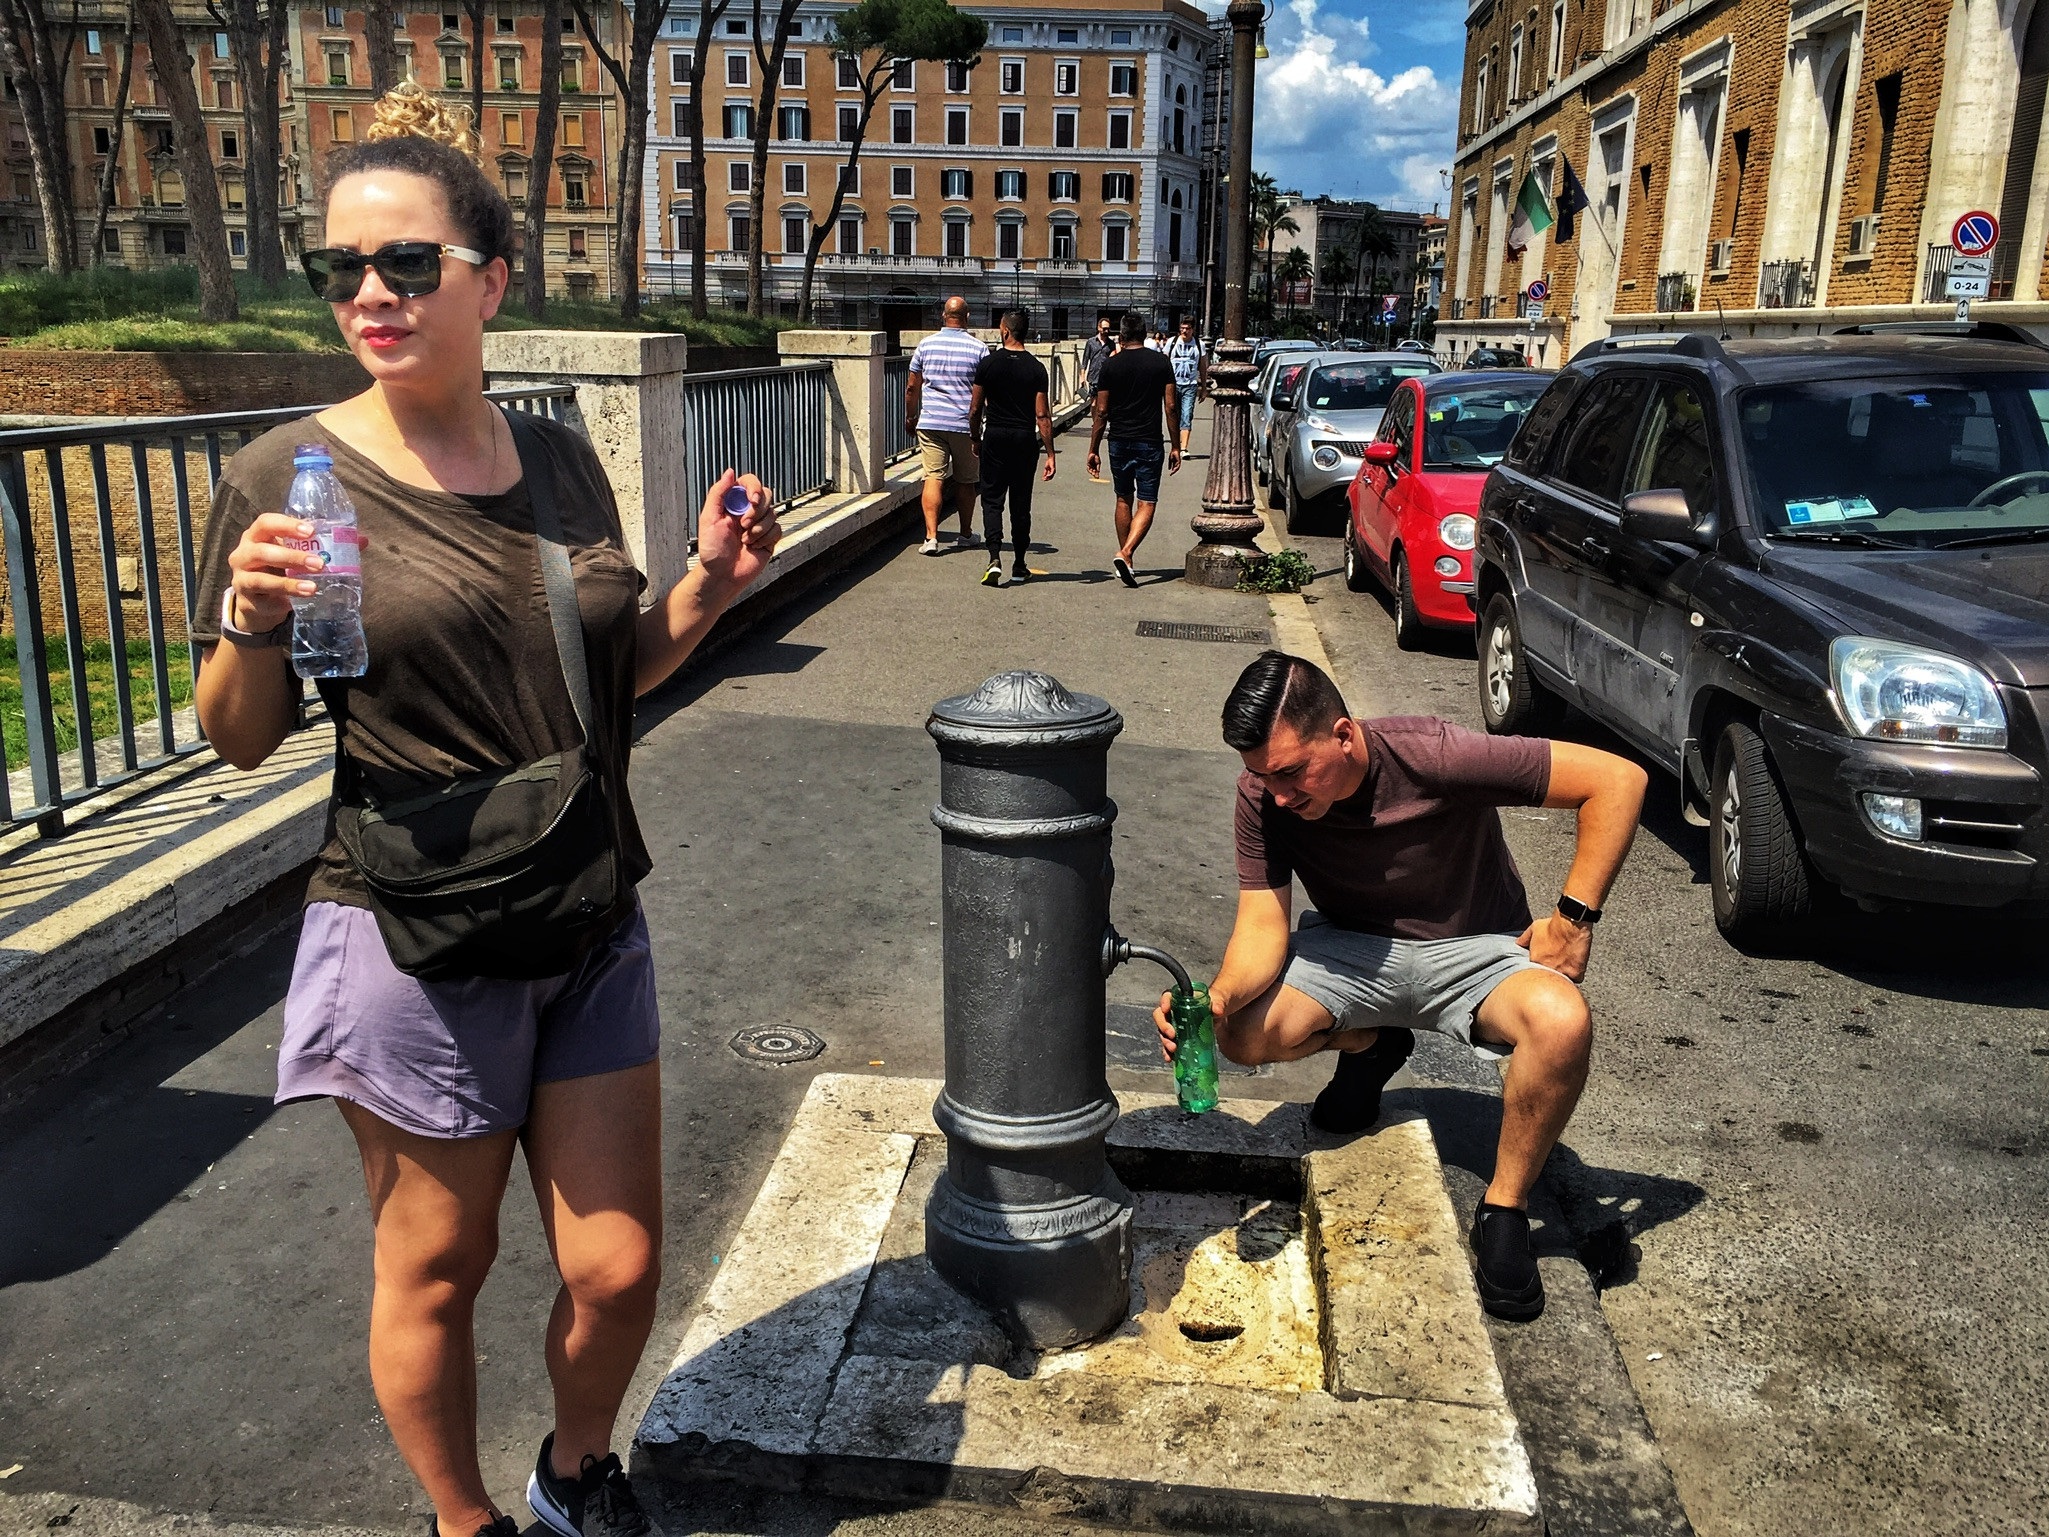 Tap water is good to drink in Rome and water fountains – founded on the aqueduct systems built by ancient Romans – provide refill opportunities for weary travelers.